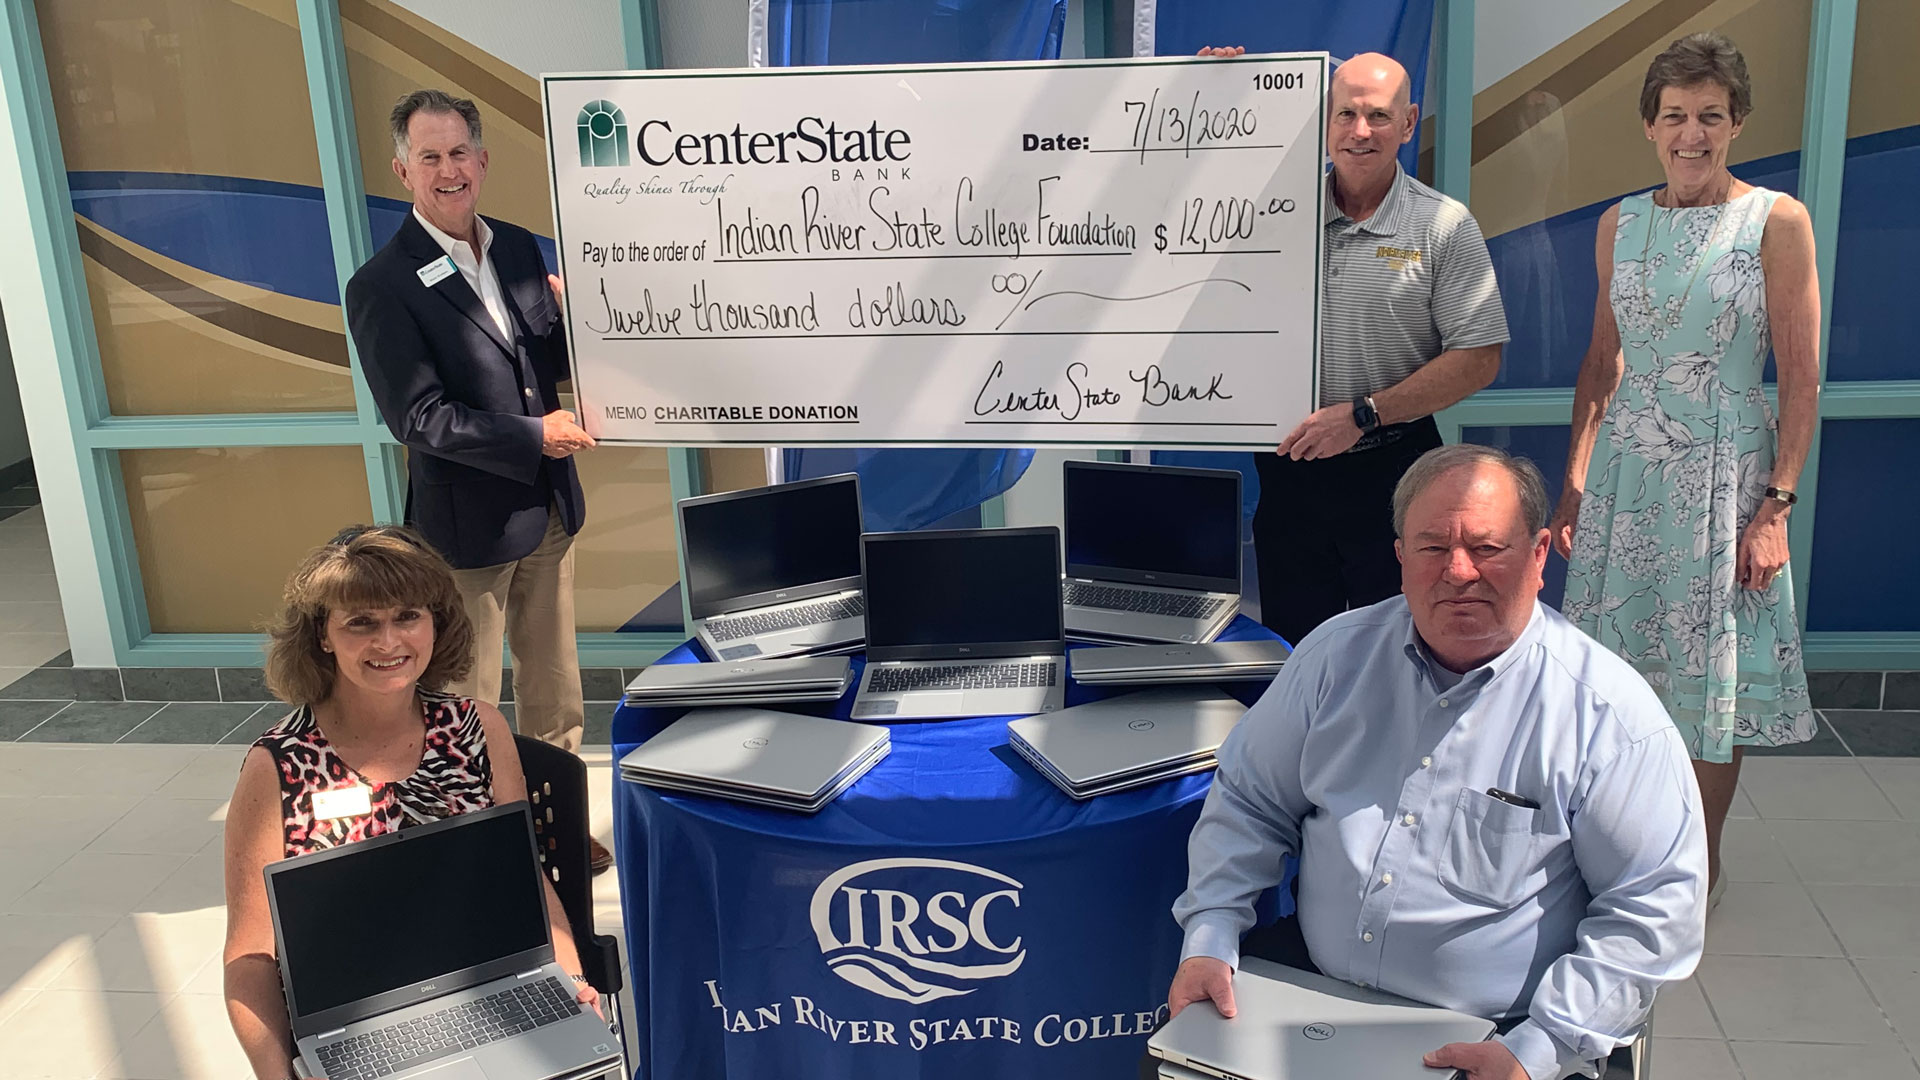 CenterState Bank representatives at the IRSC Dixon Hendry Campus